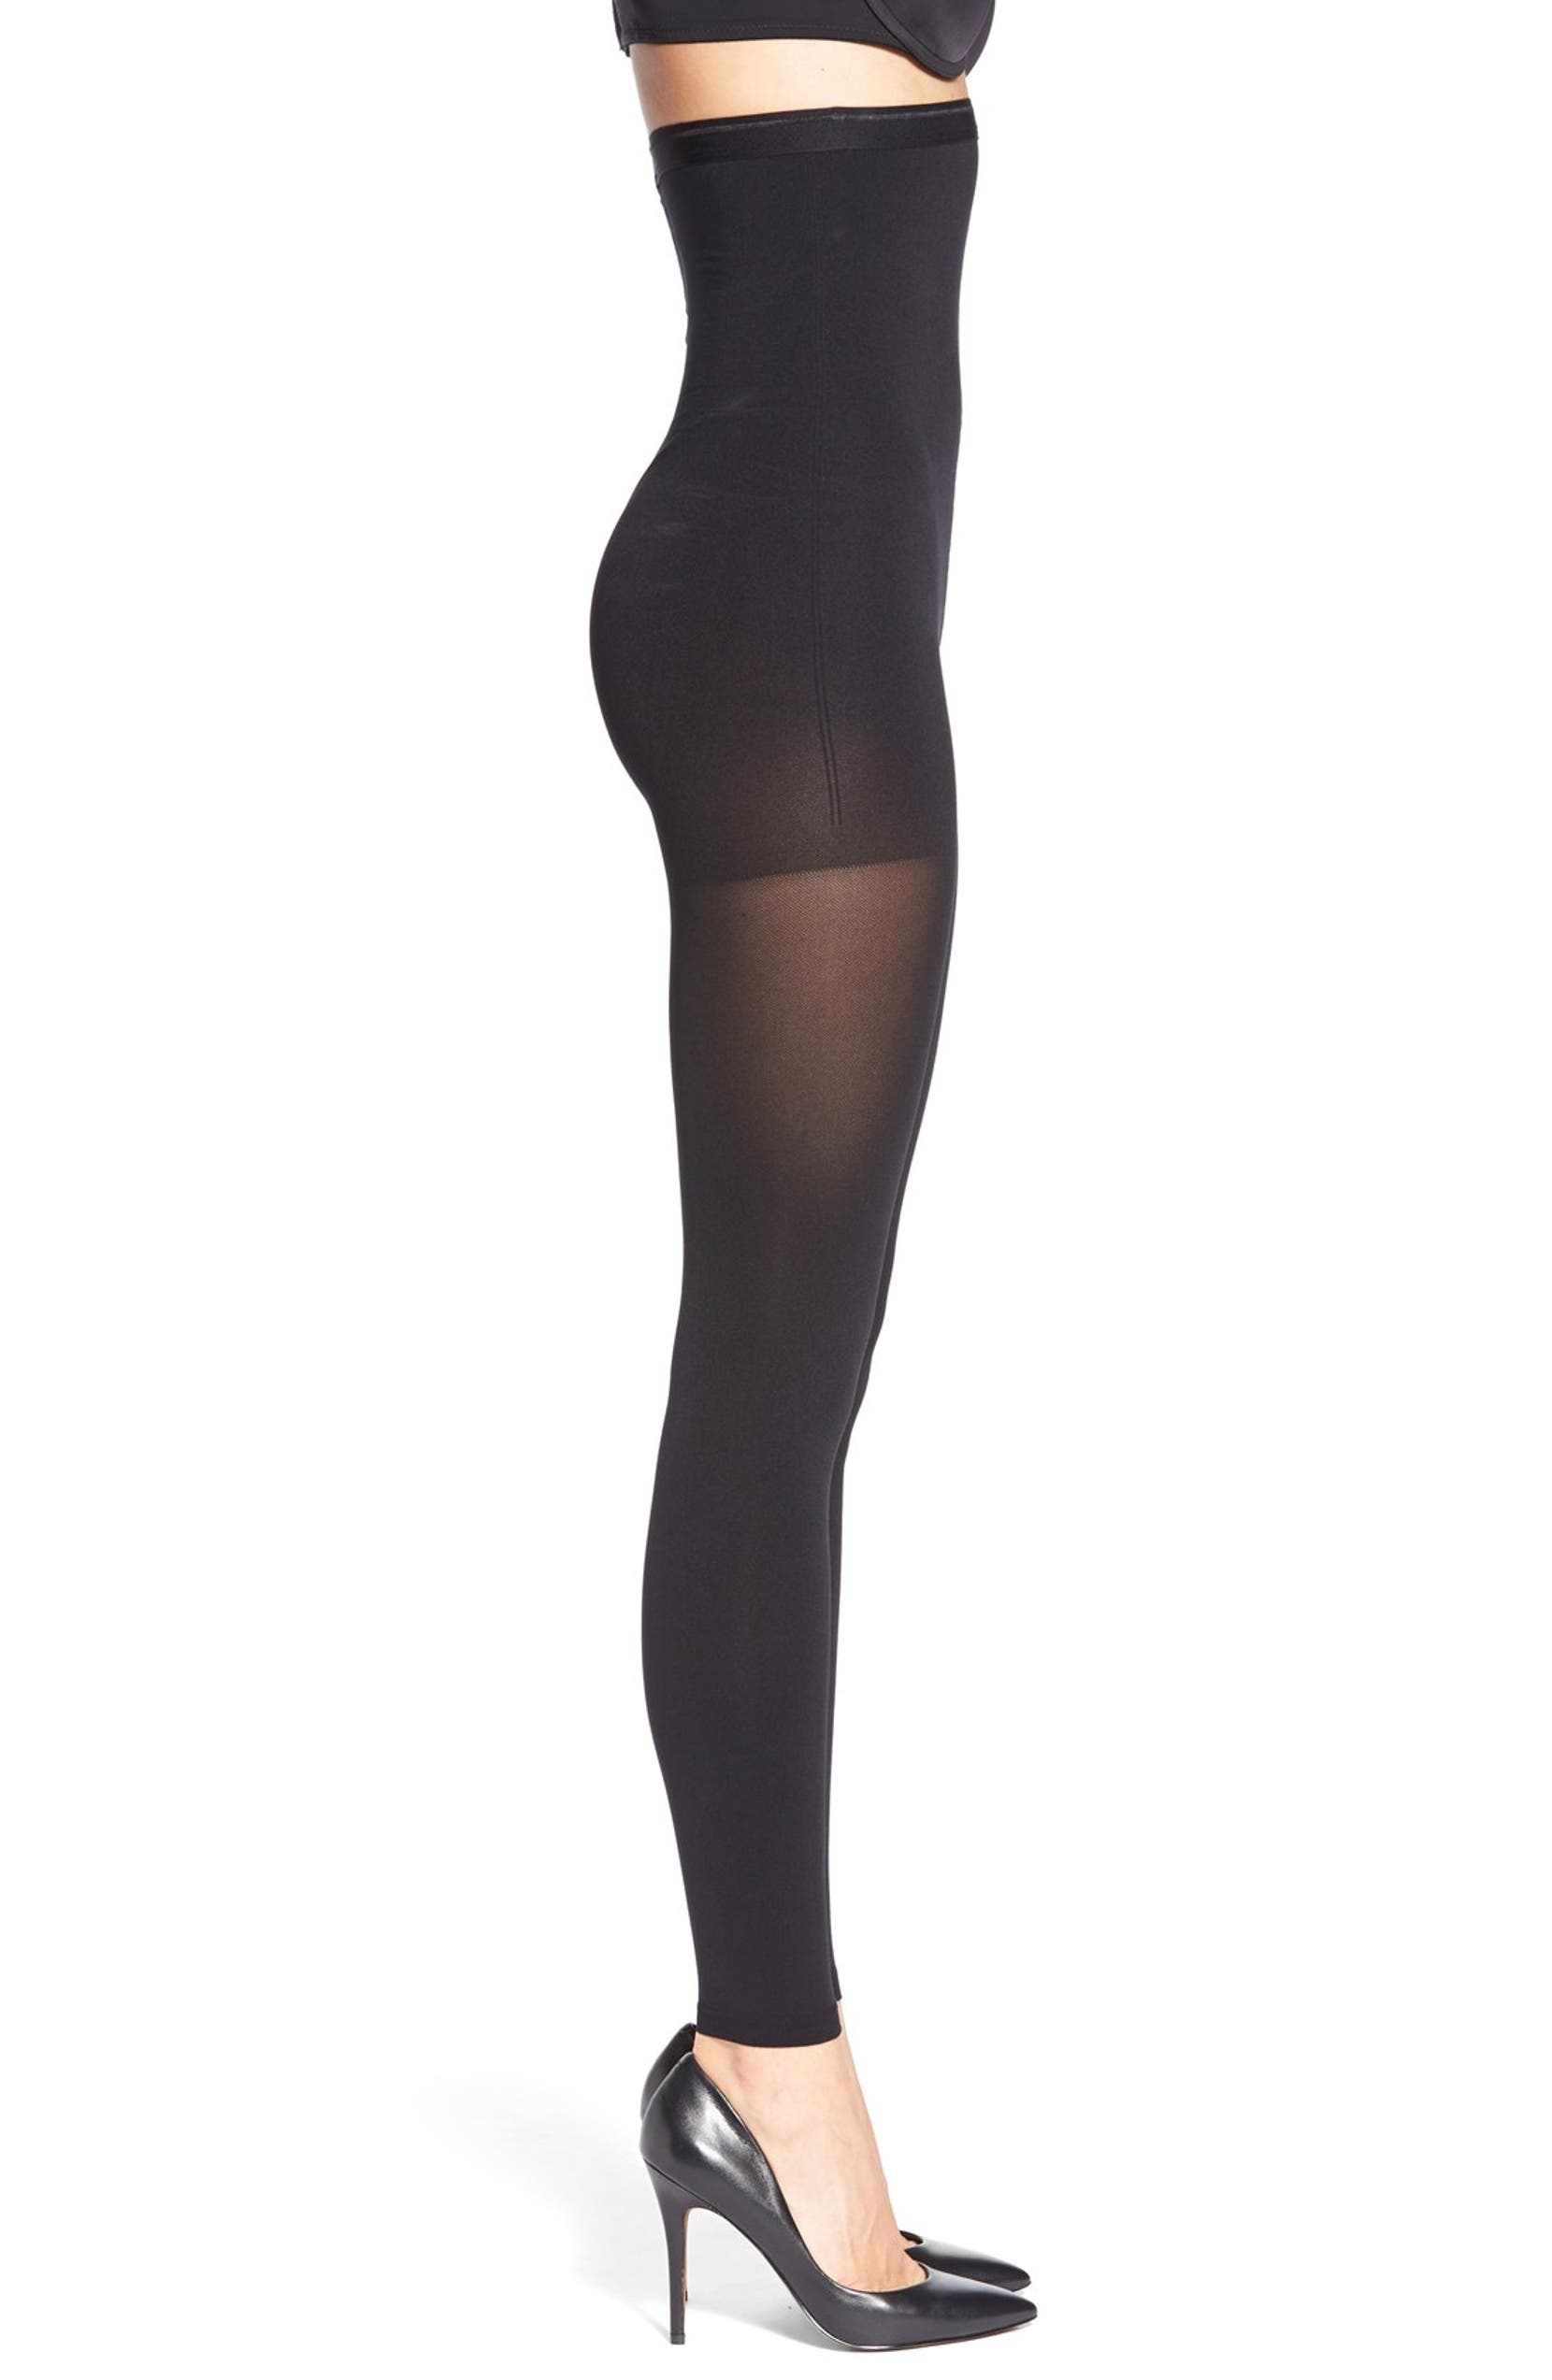 379228e26e477 ITEM m6 High Rise Opaque Footless Shaping Tights | Nordstrom